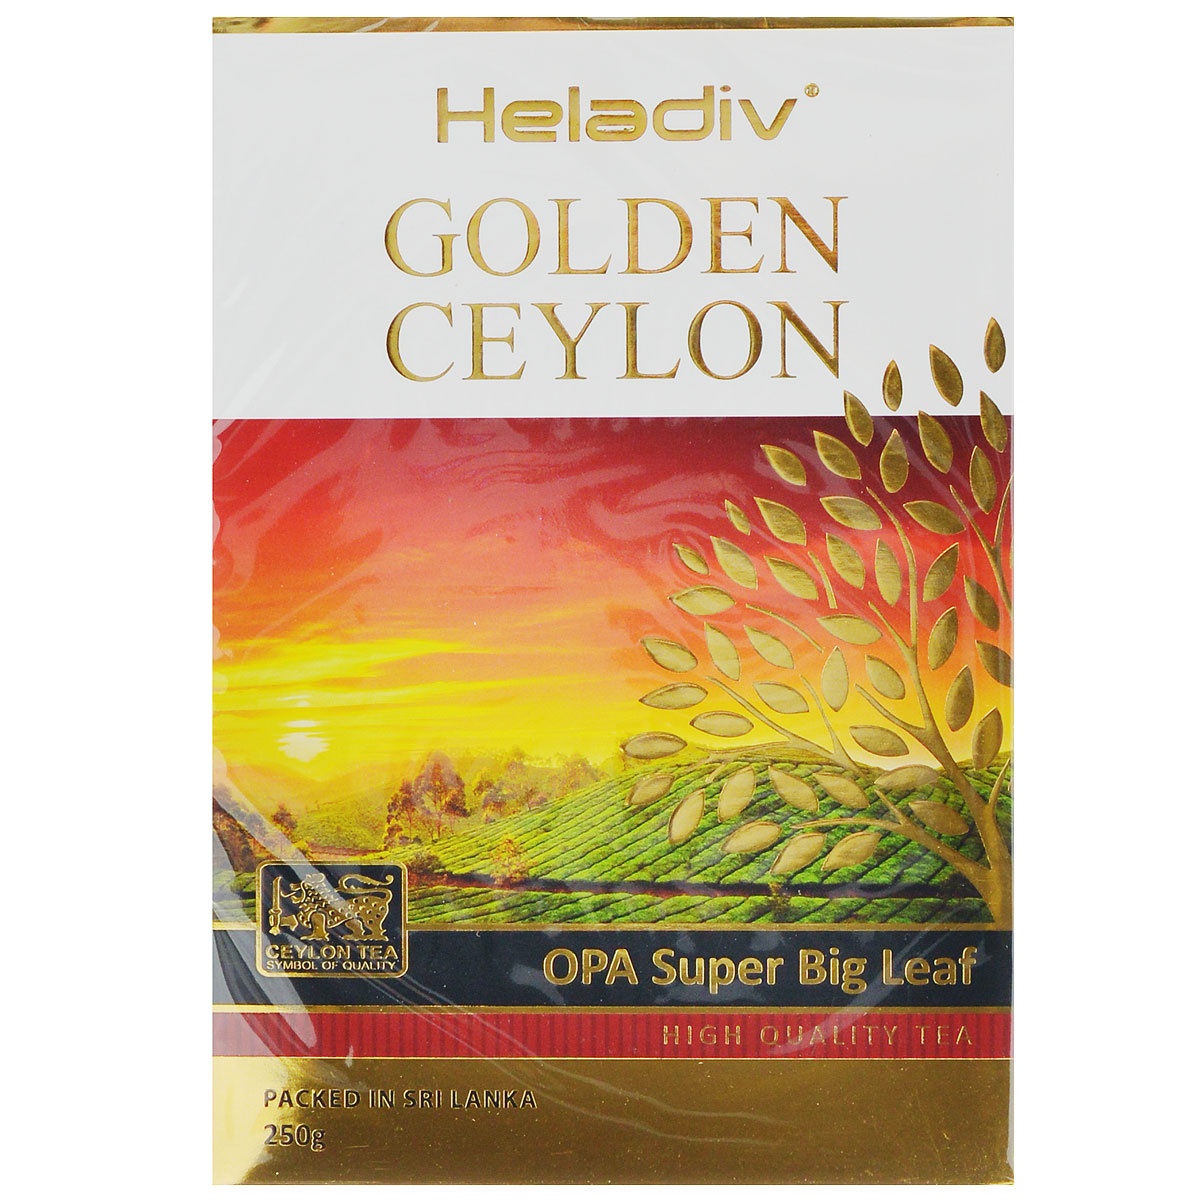 Heladiv Golden Ceylon Opa Super Big Leaf черный листовой чай, 250 г 25cm giant huge dildo super big dildo realistic artifitial penis female masturbator erotic sex toy for women big dick husband